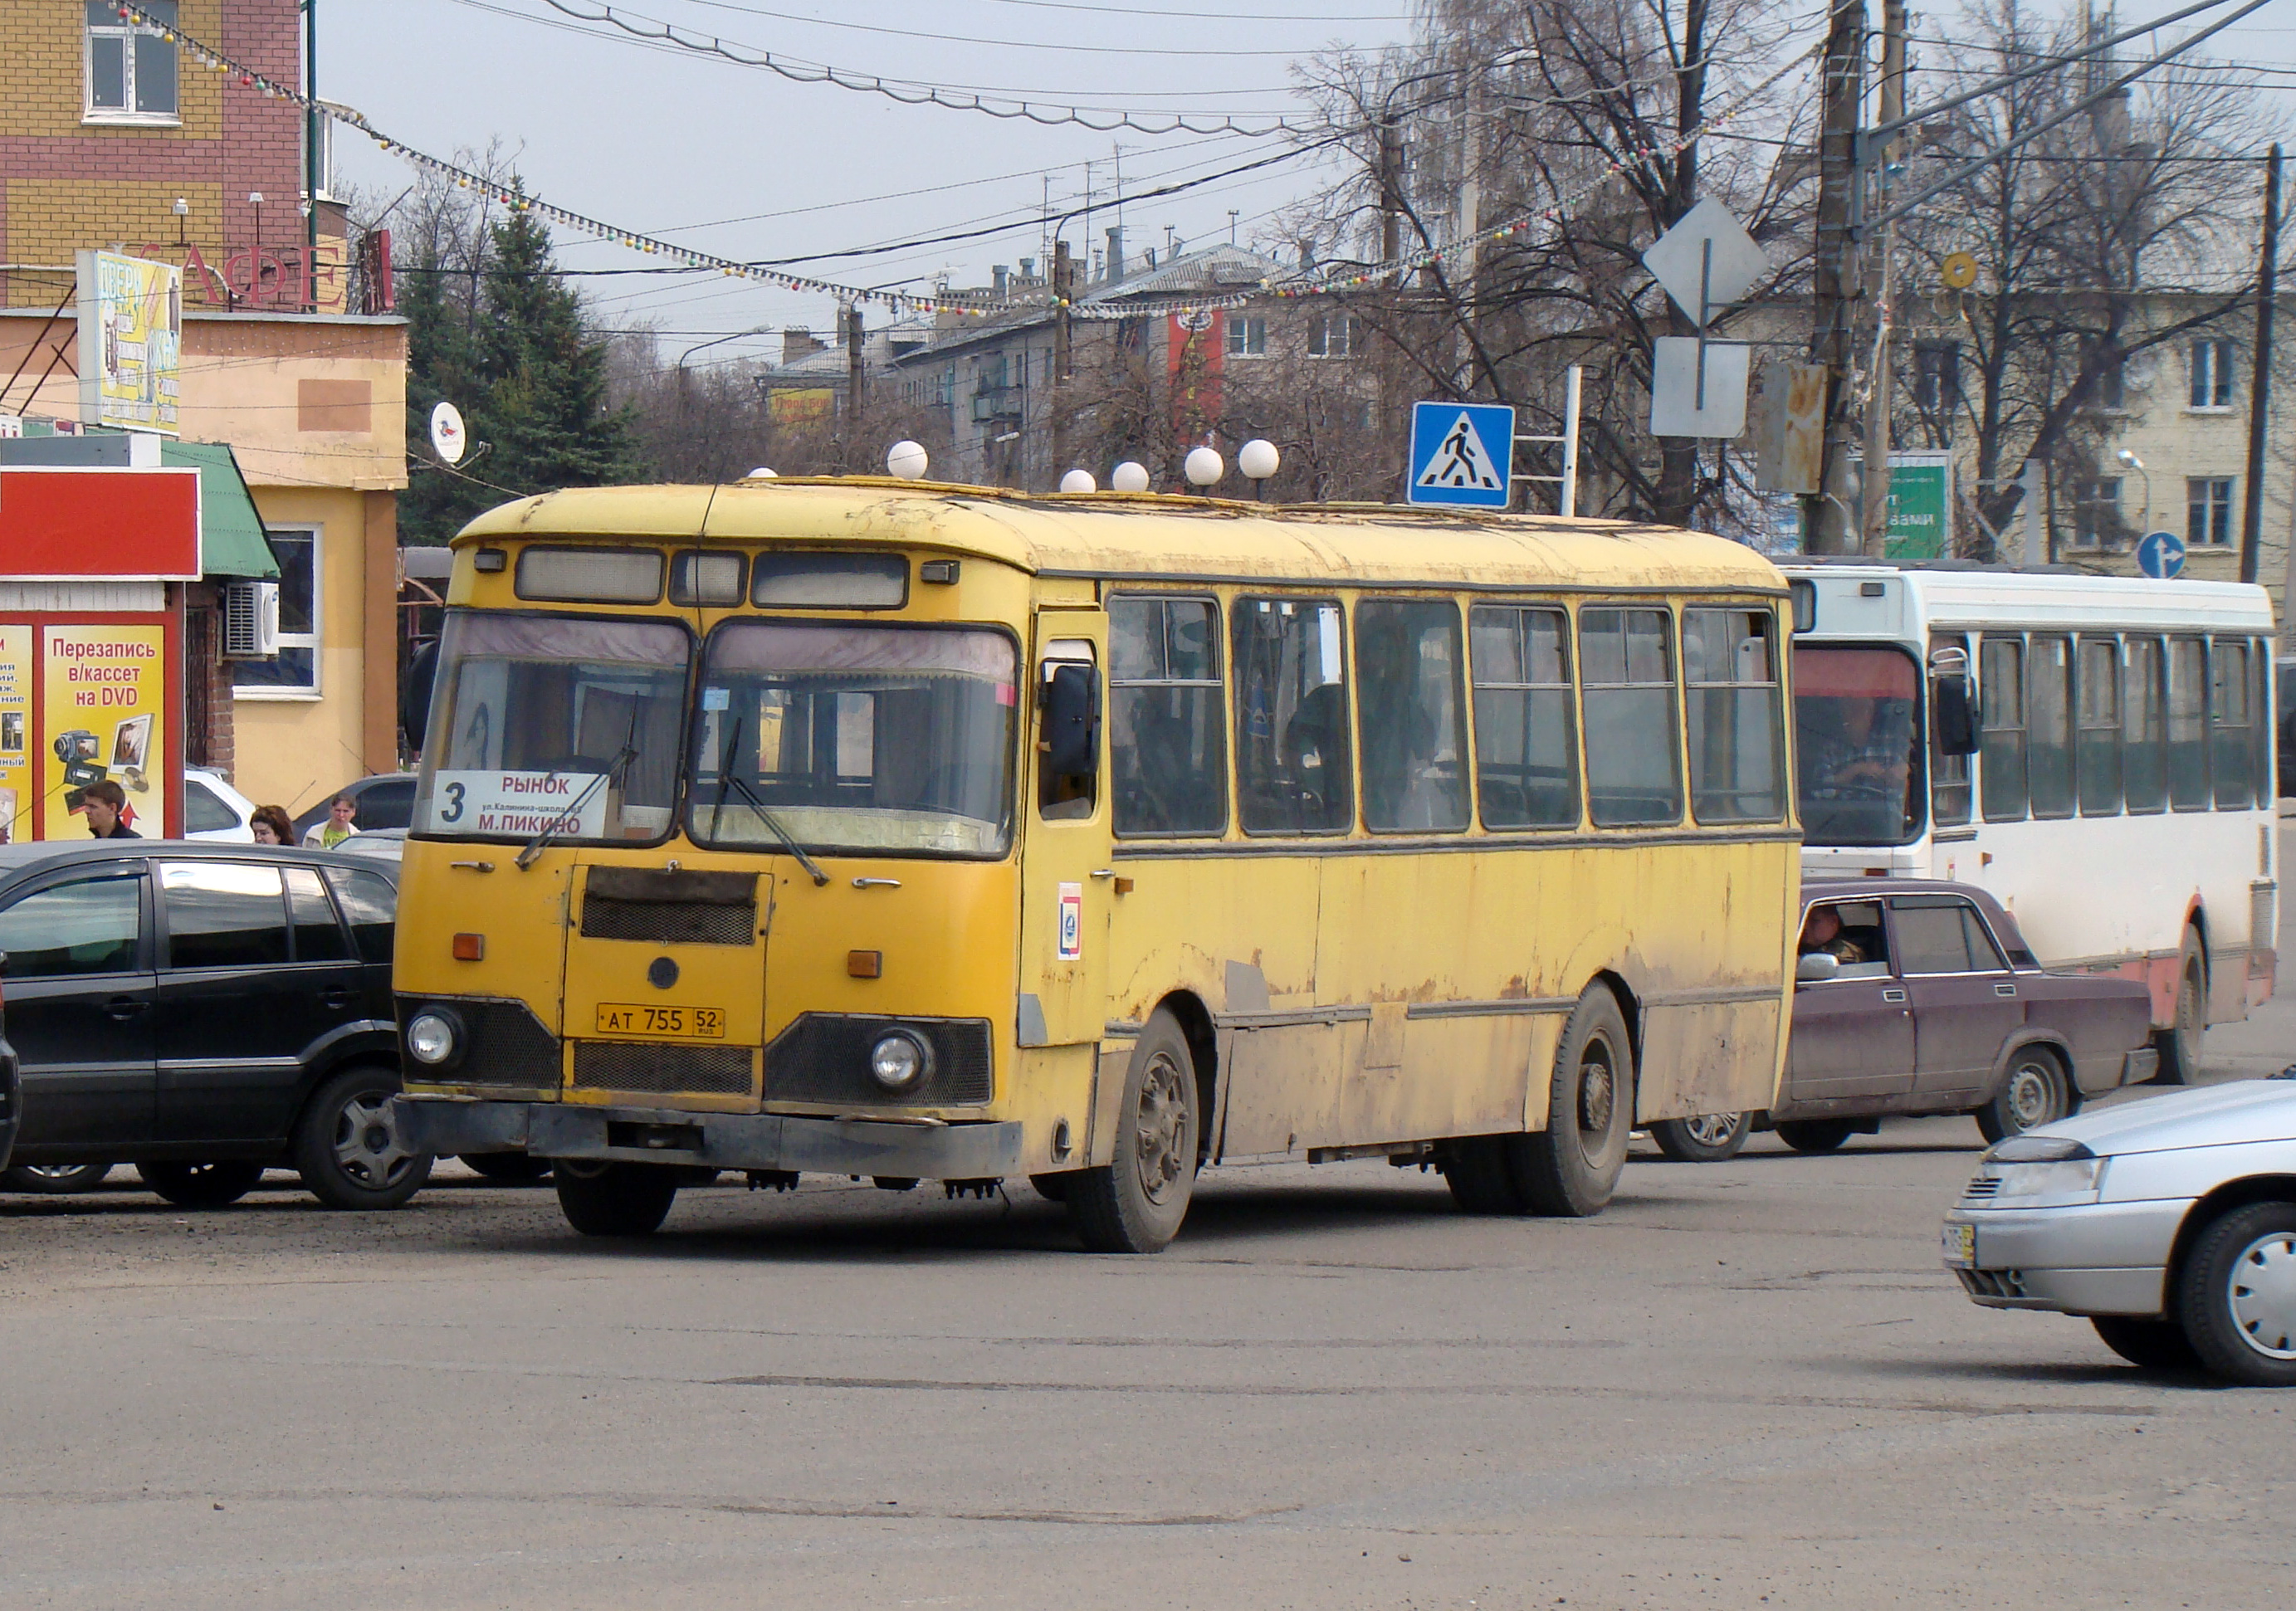 File:LiAZ-677 bus in Bor.jpg